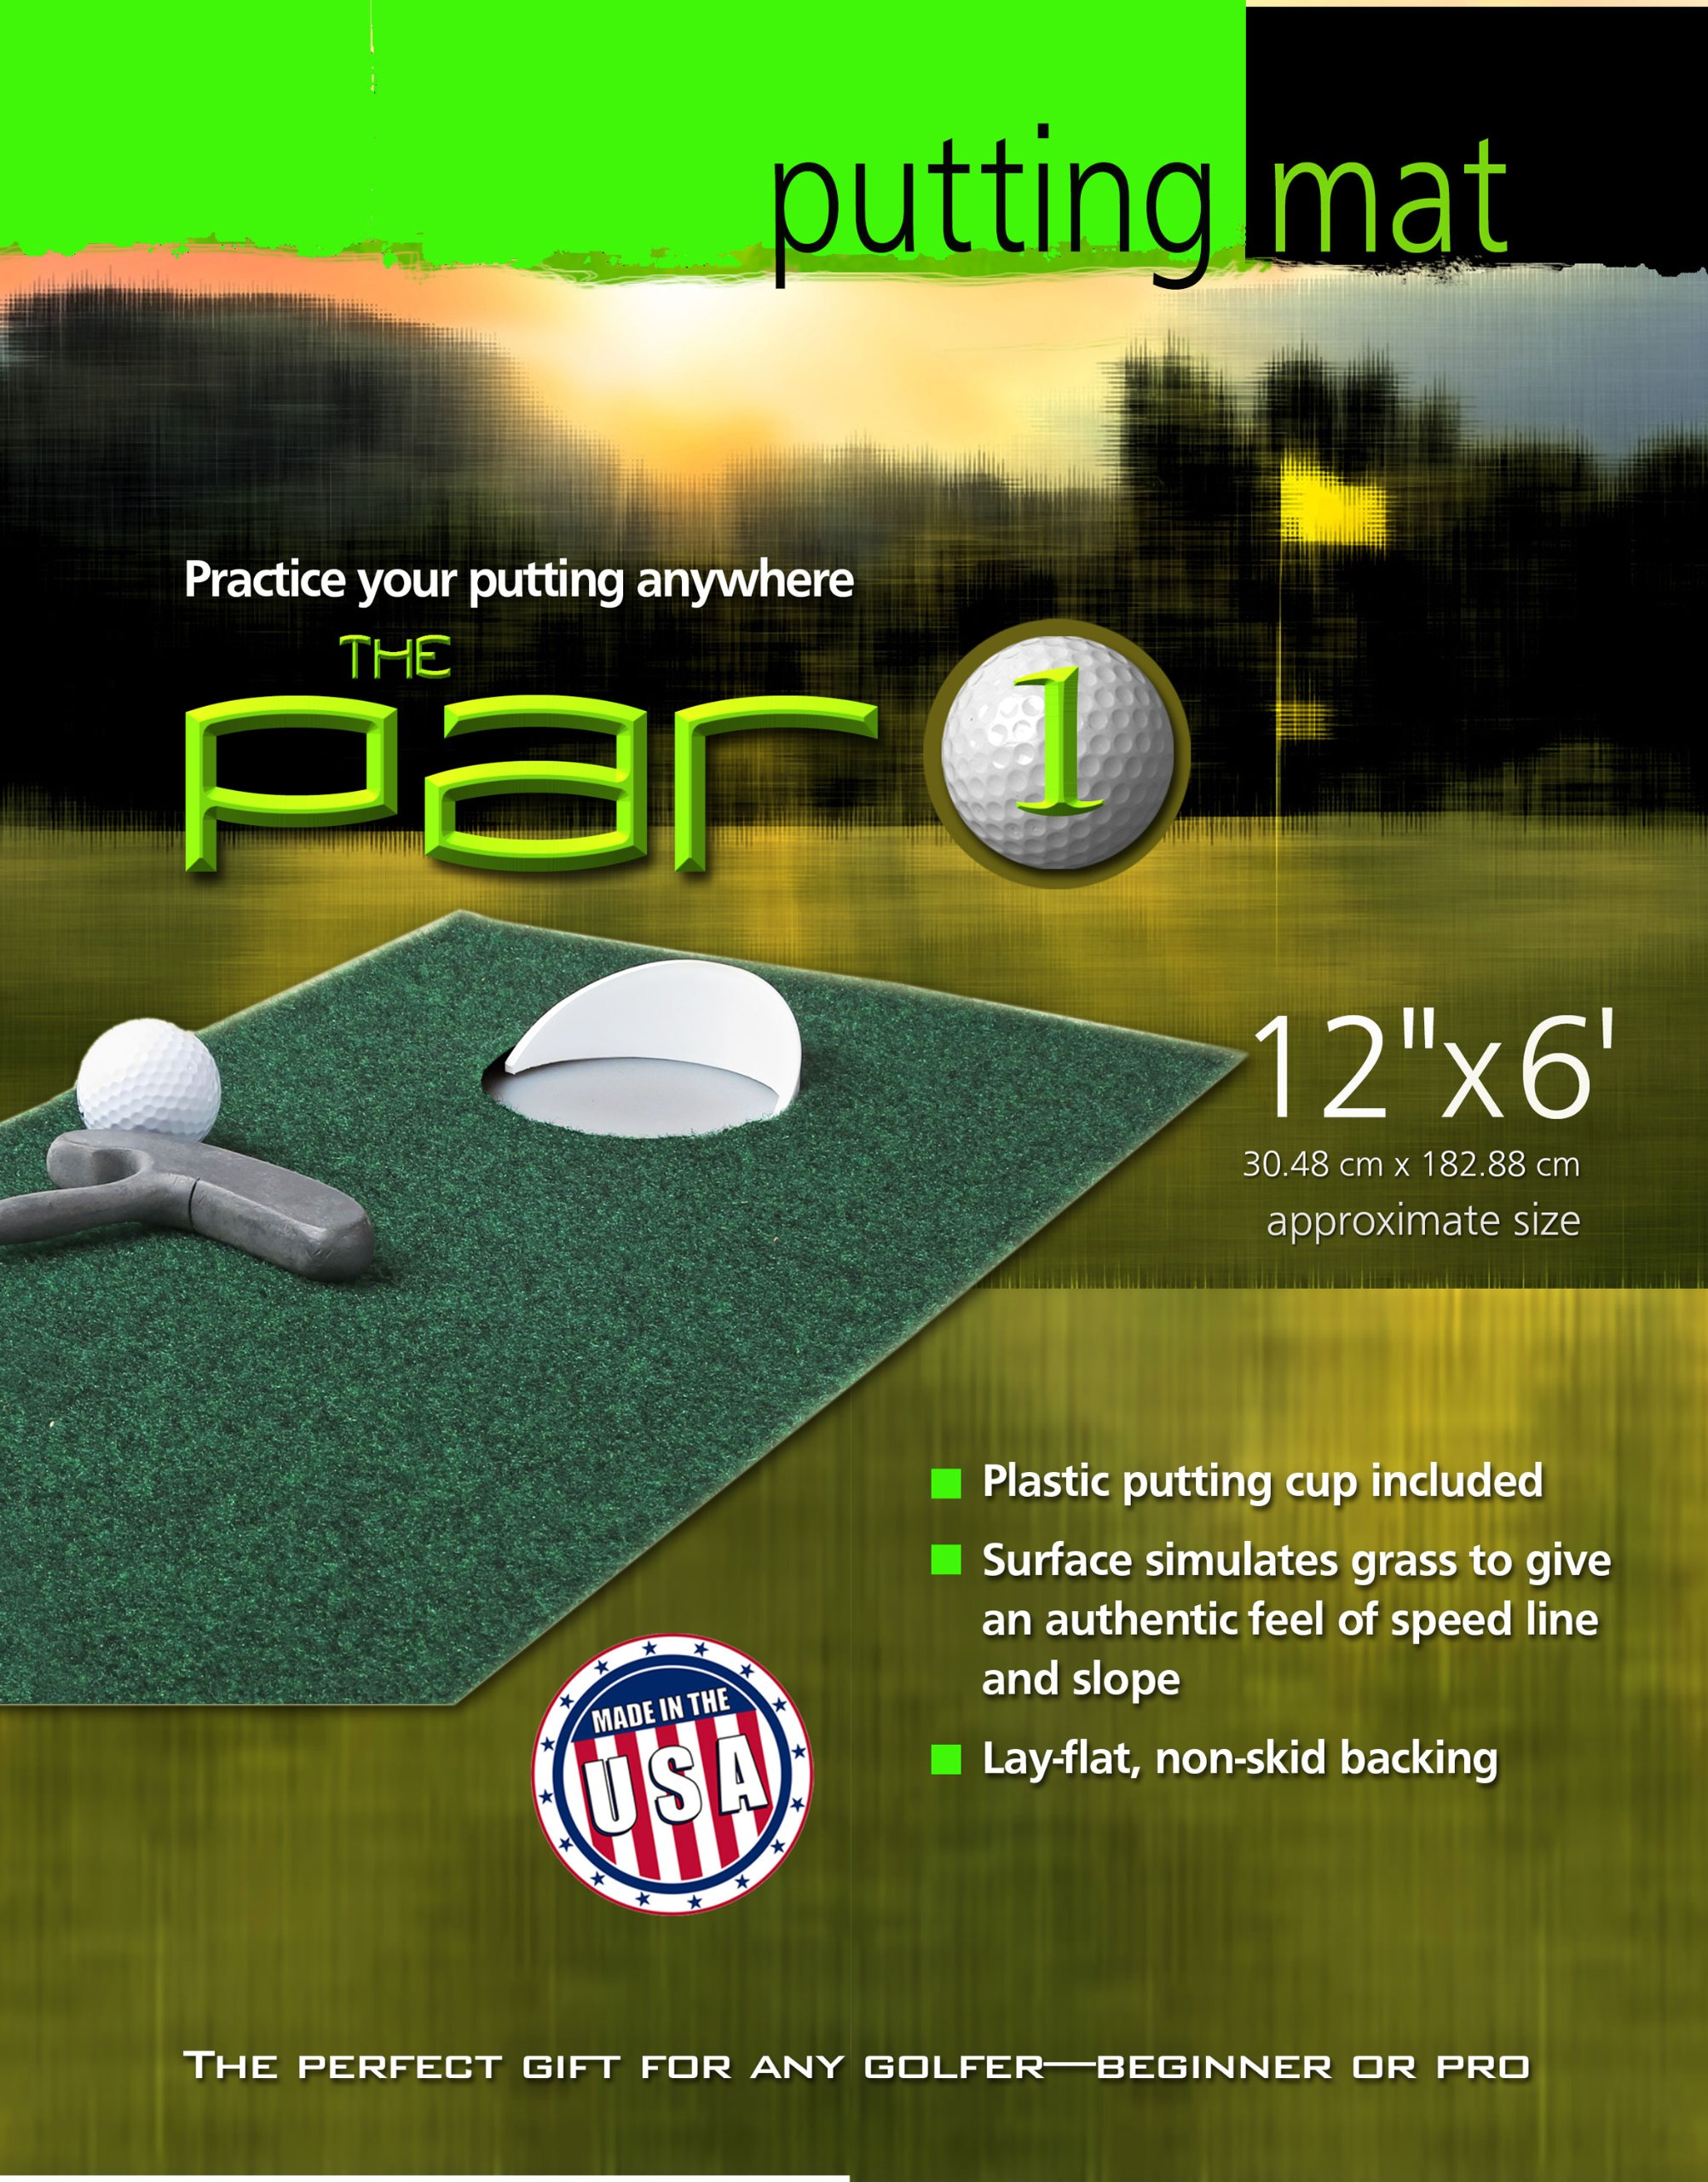 Putt-A-Bout The Par 1 Putting Mat, Green, 12-Inch x 6-Feet by Putt-A-Bout